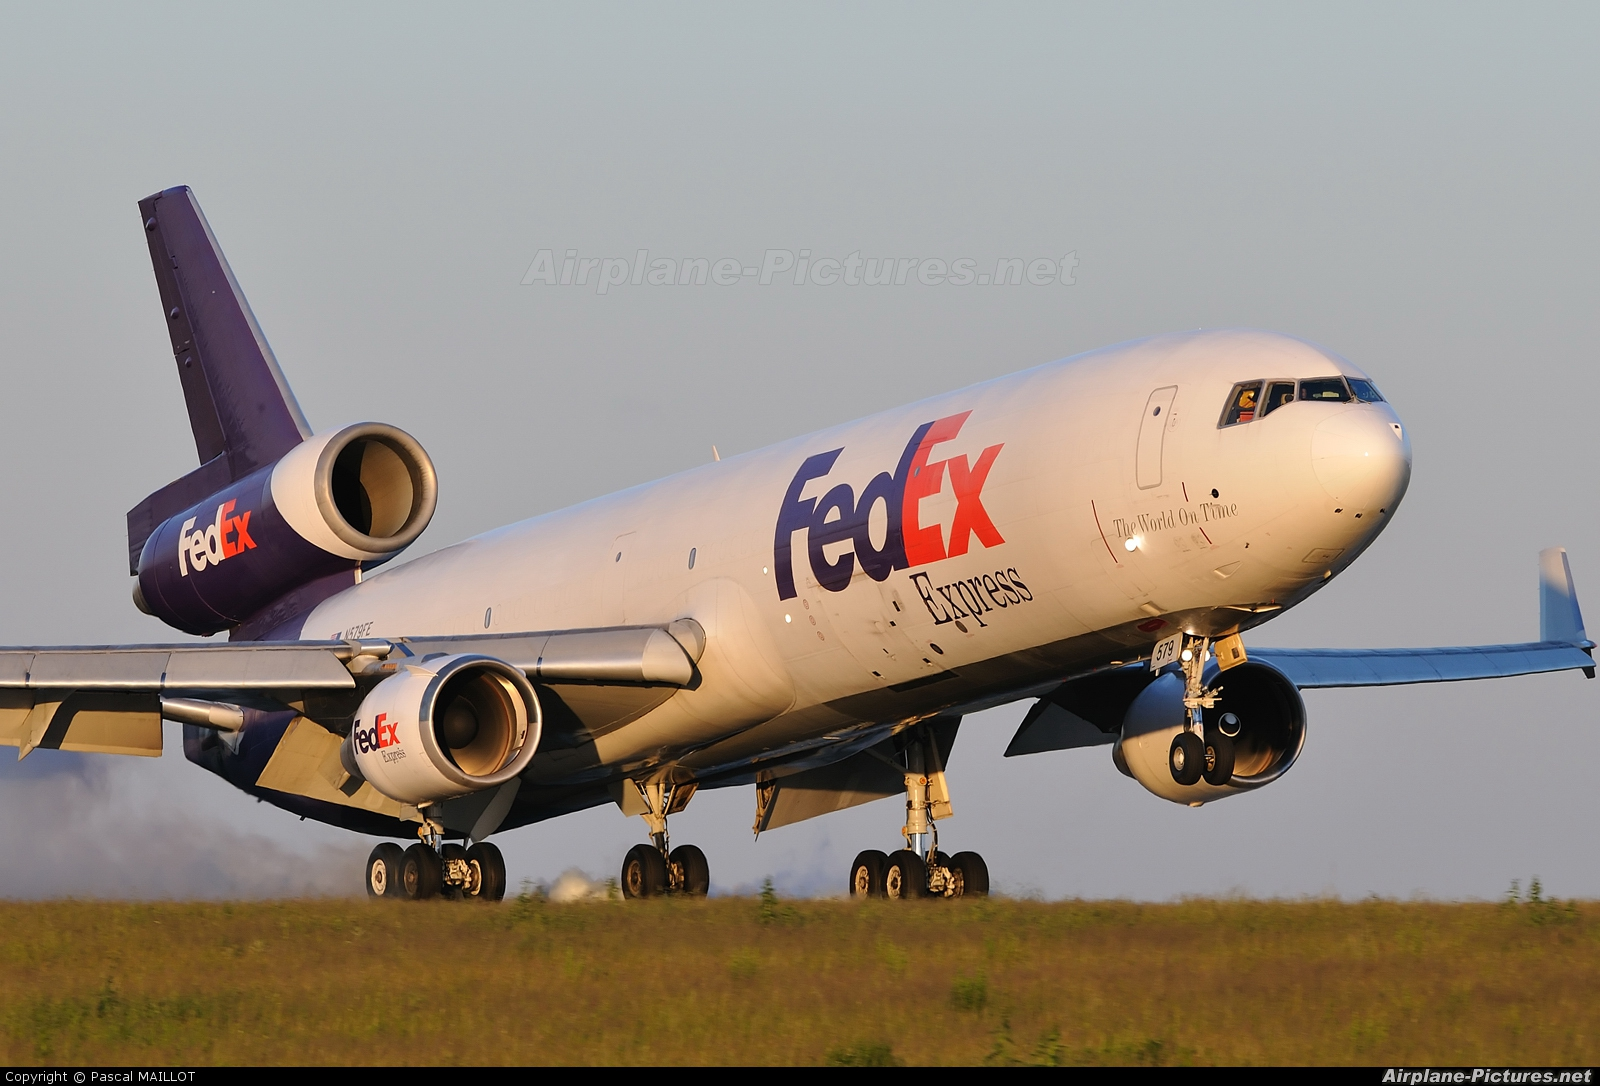 fed ex Prepare forms online my global trade data forms can help you complete documents online and store them on a fedex trade networks server register or log in to my global trade data.